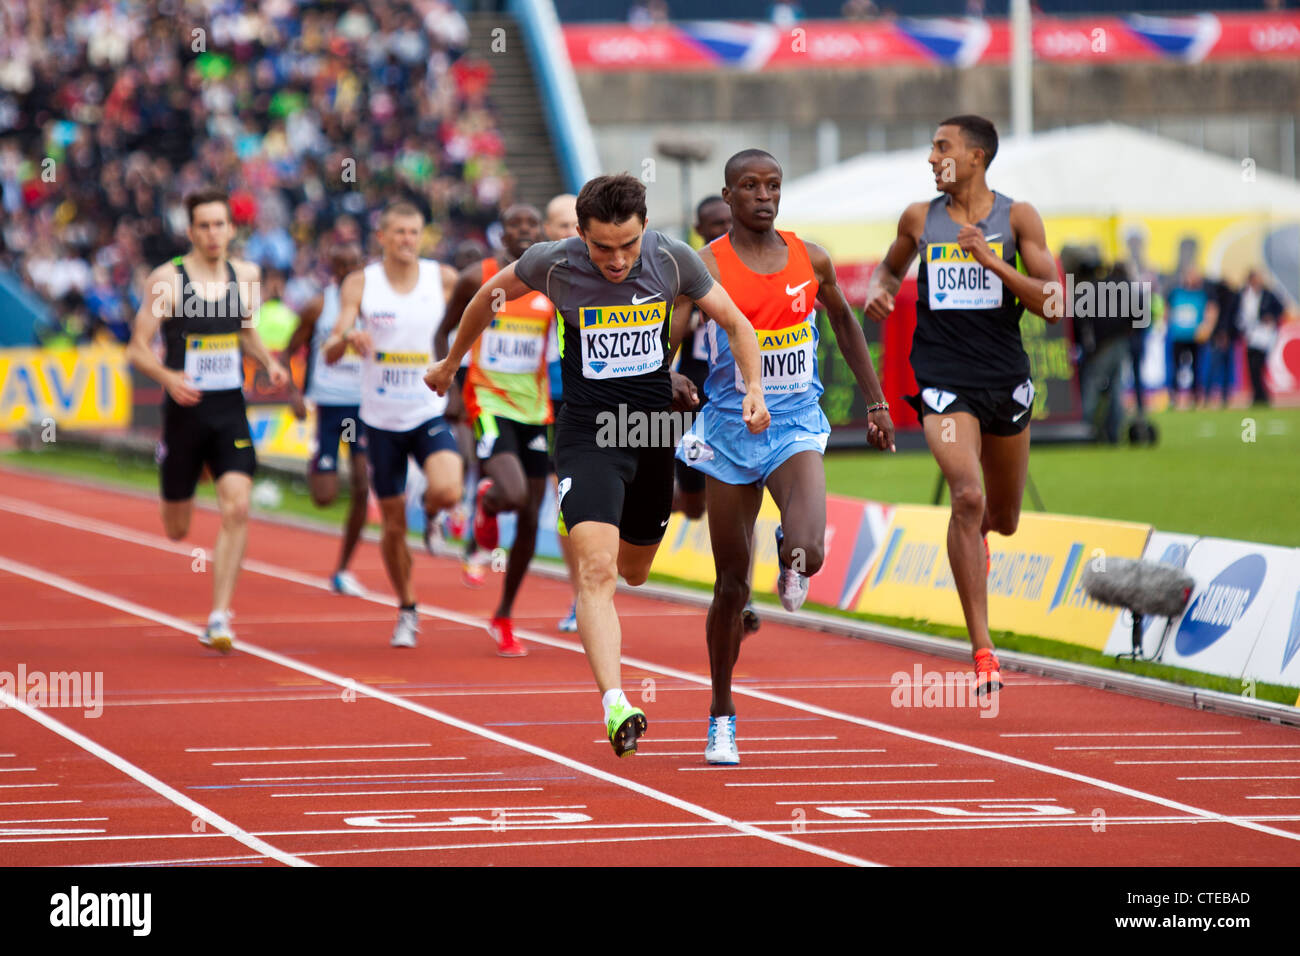 Adam KSZCZOT Job KINYOR & Mens 800m, Aviva London Grand Prix, Crystal Palace, London 2012 - Stock Image